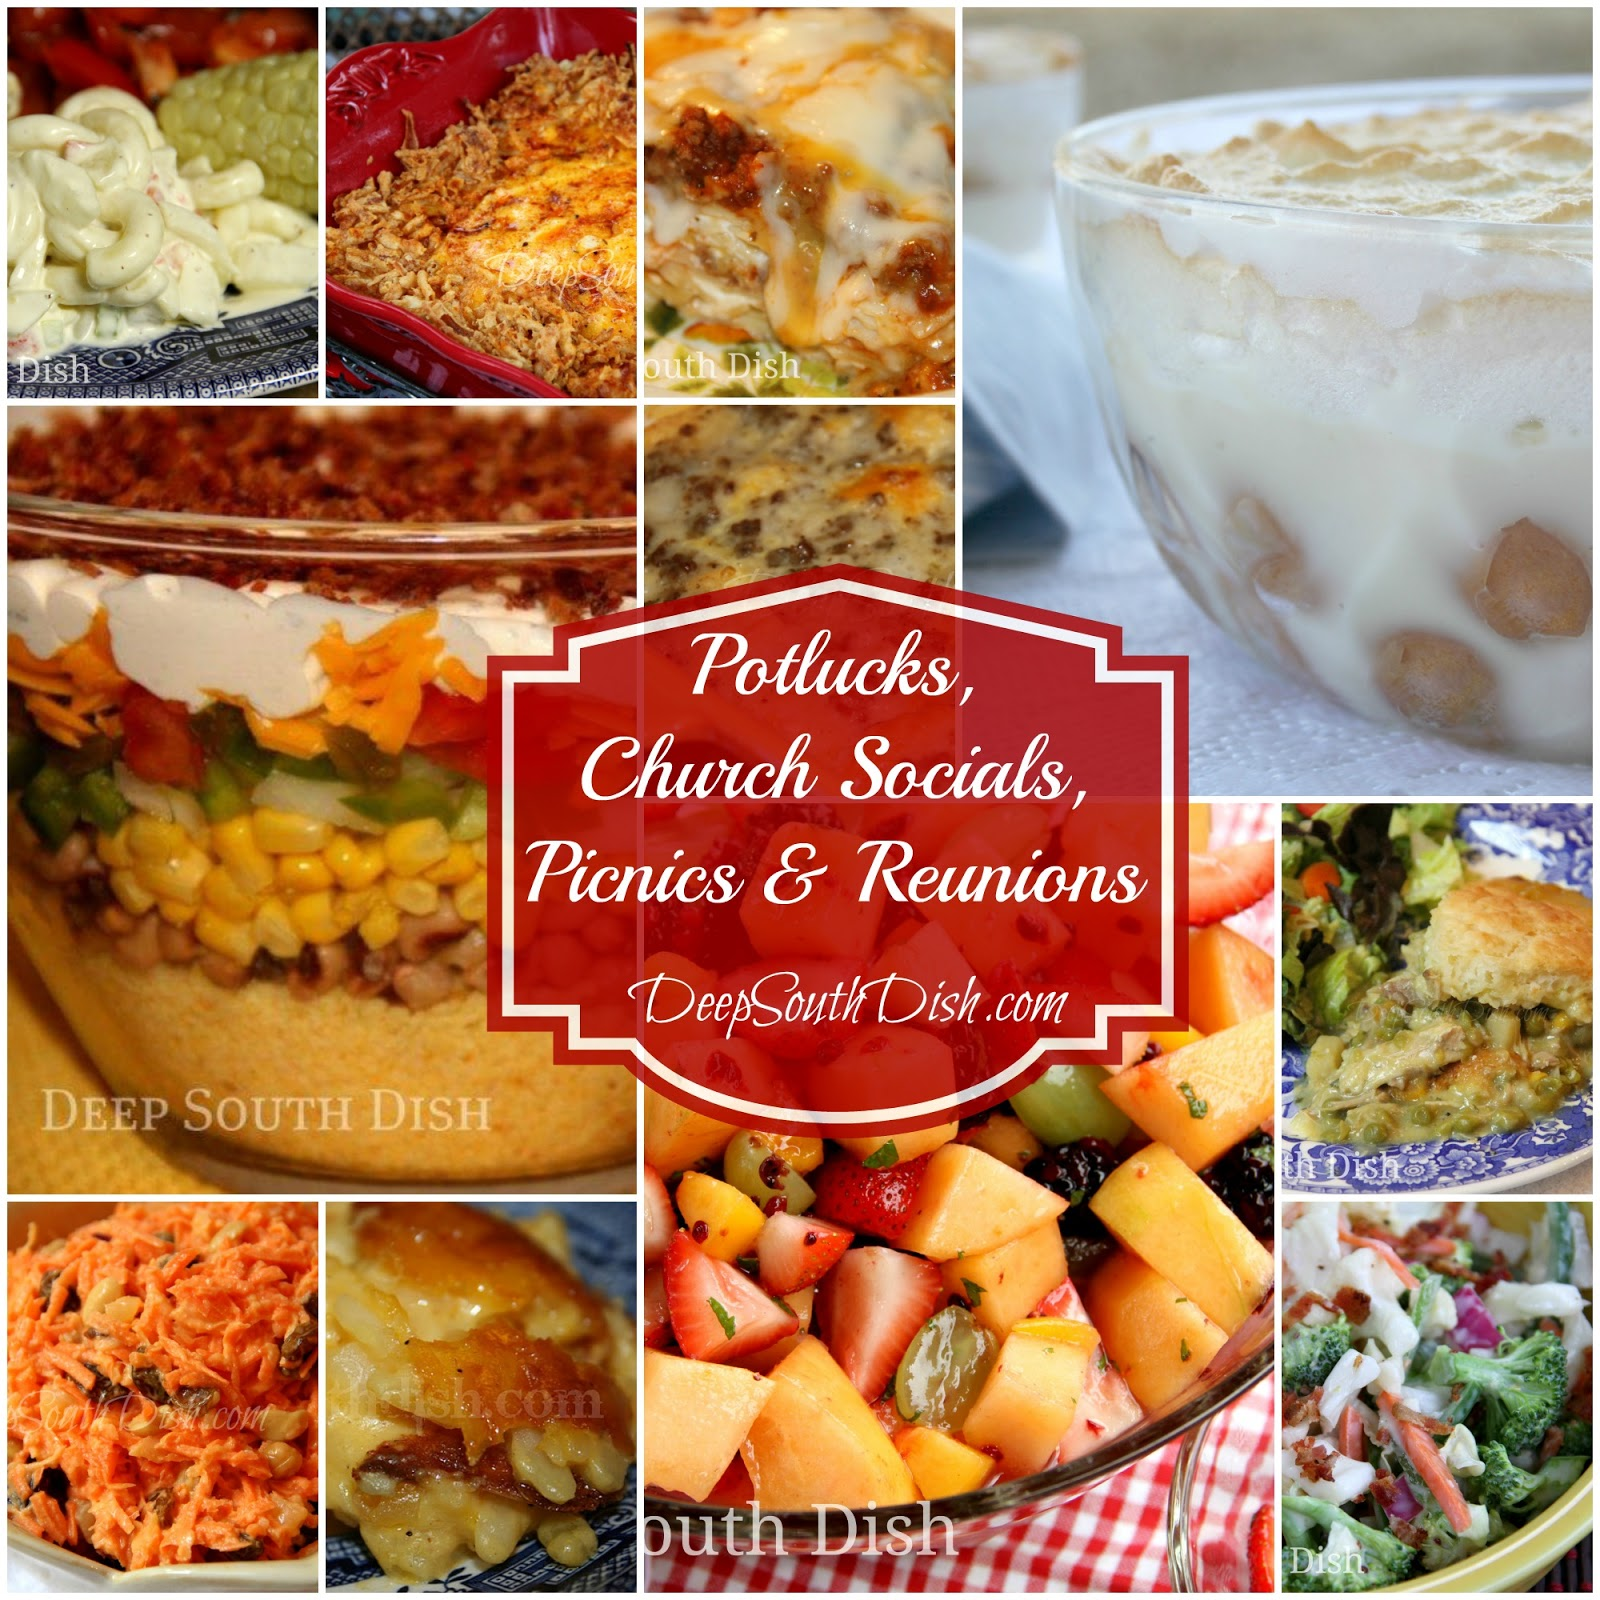 Deep south dish recipes for potlucks church socials picnics from appetizers to main dish dessert and everything in between a wonderful collection of great step by step recipes from deep south dish perfect for your forumfinder Image collections